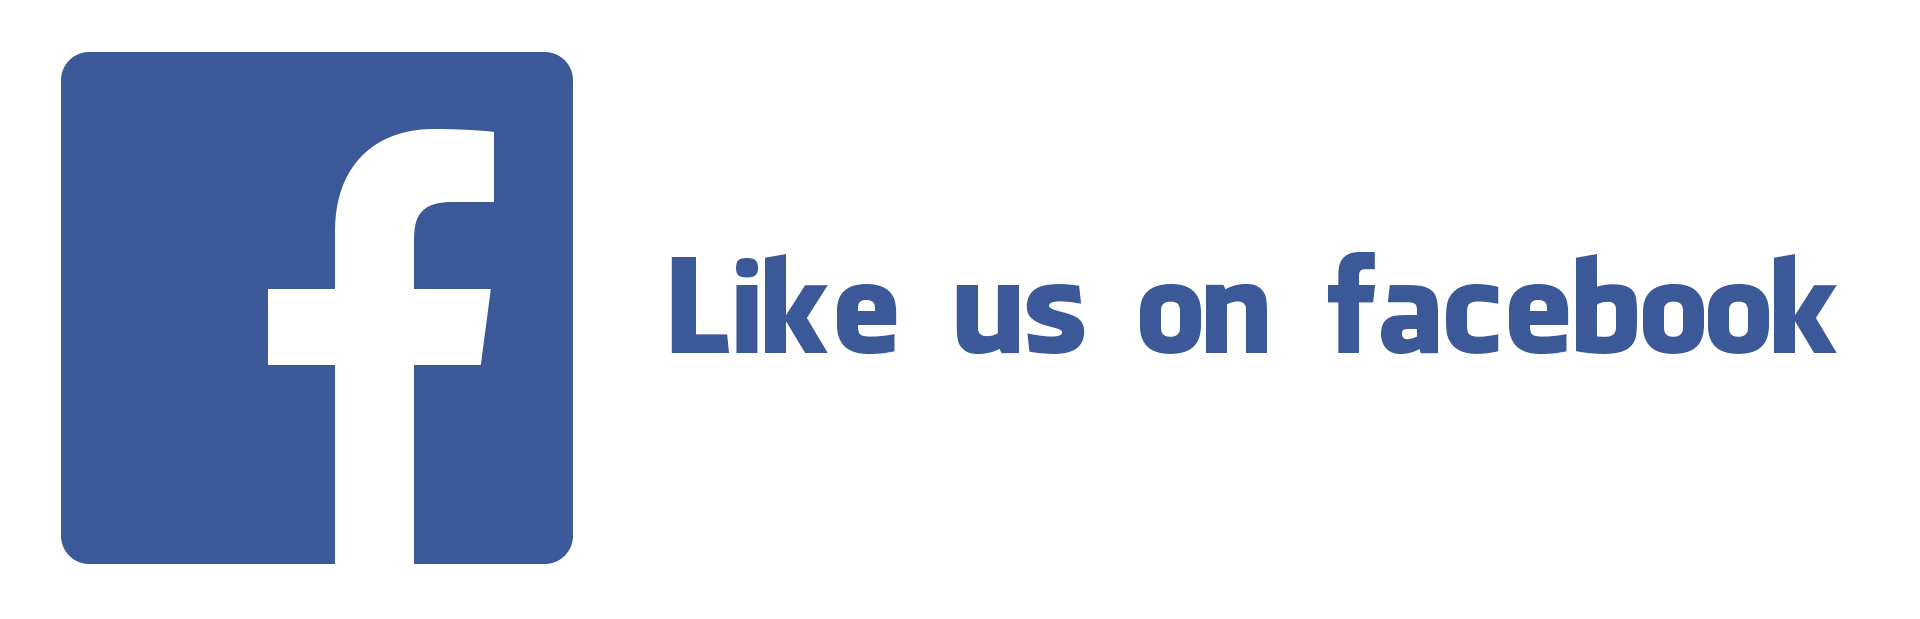 Click here to like us on Facebook!